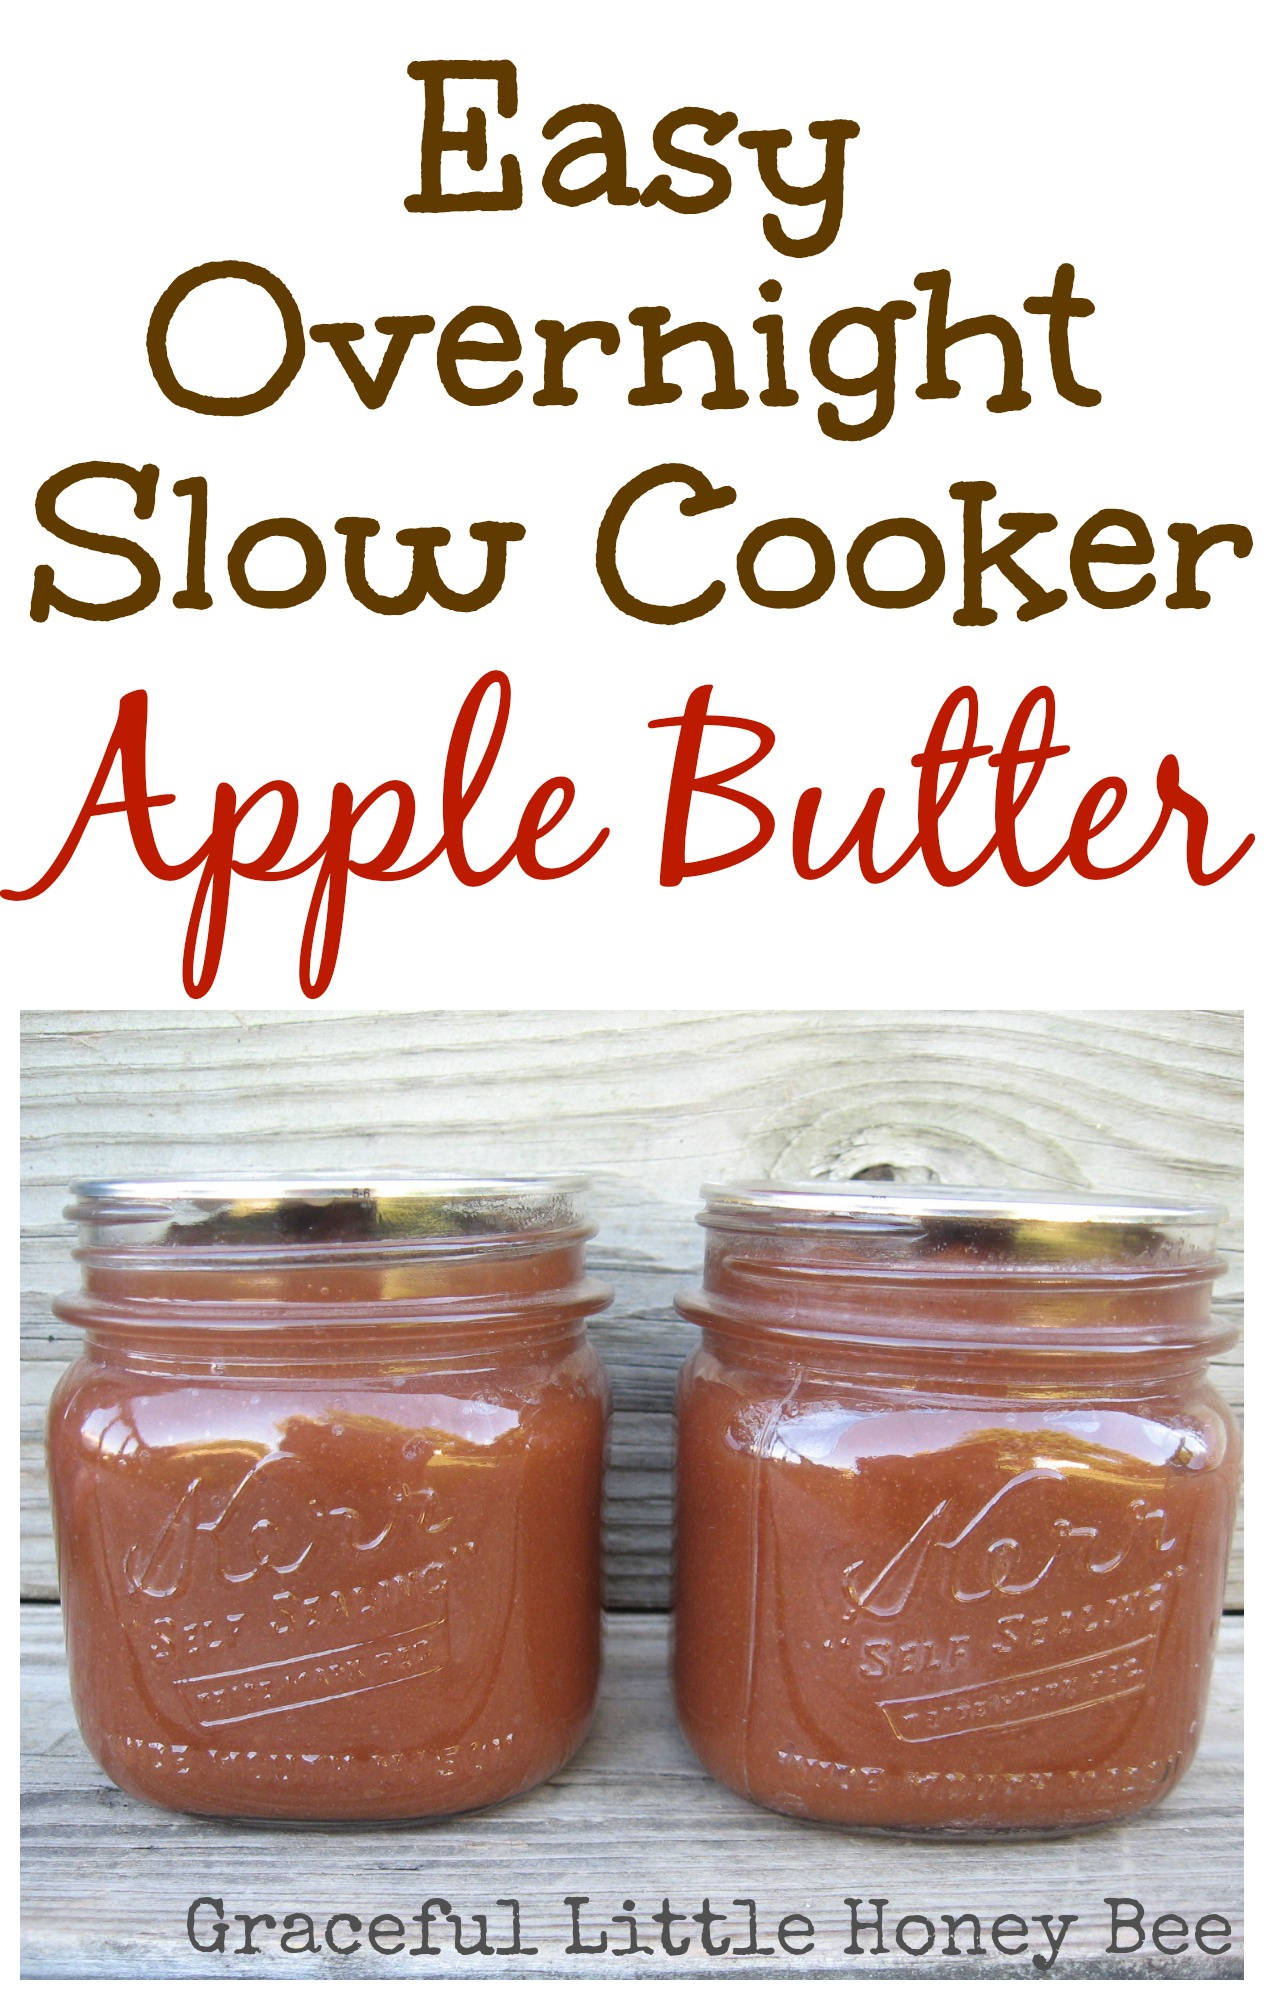 Slow Cooker Apple Butter - Graceful Little Honey Bee